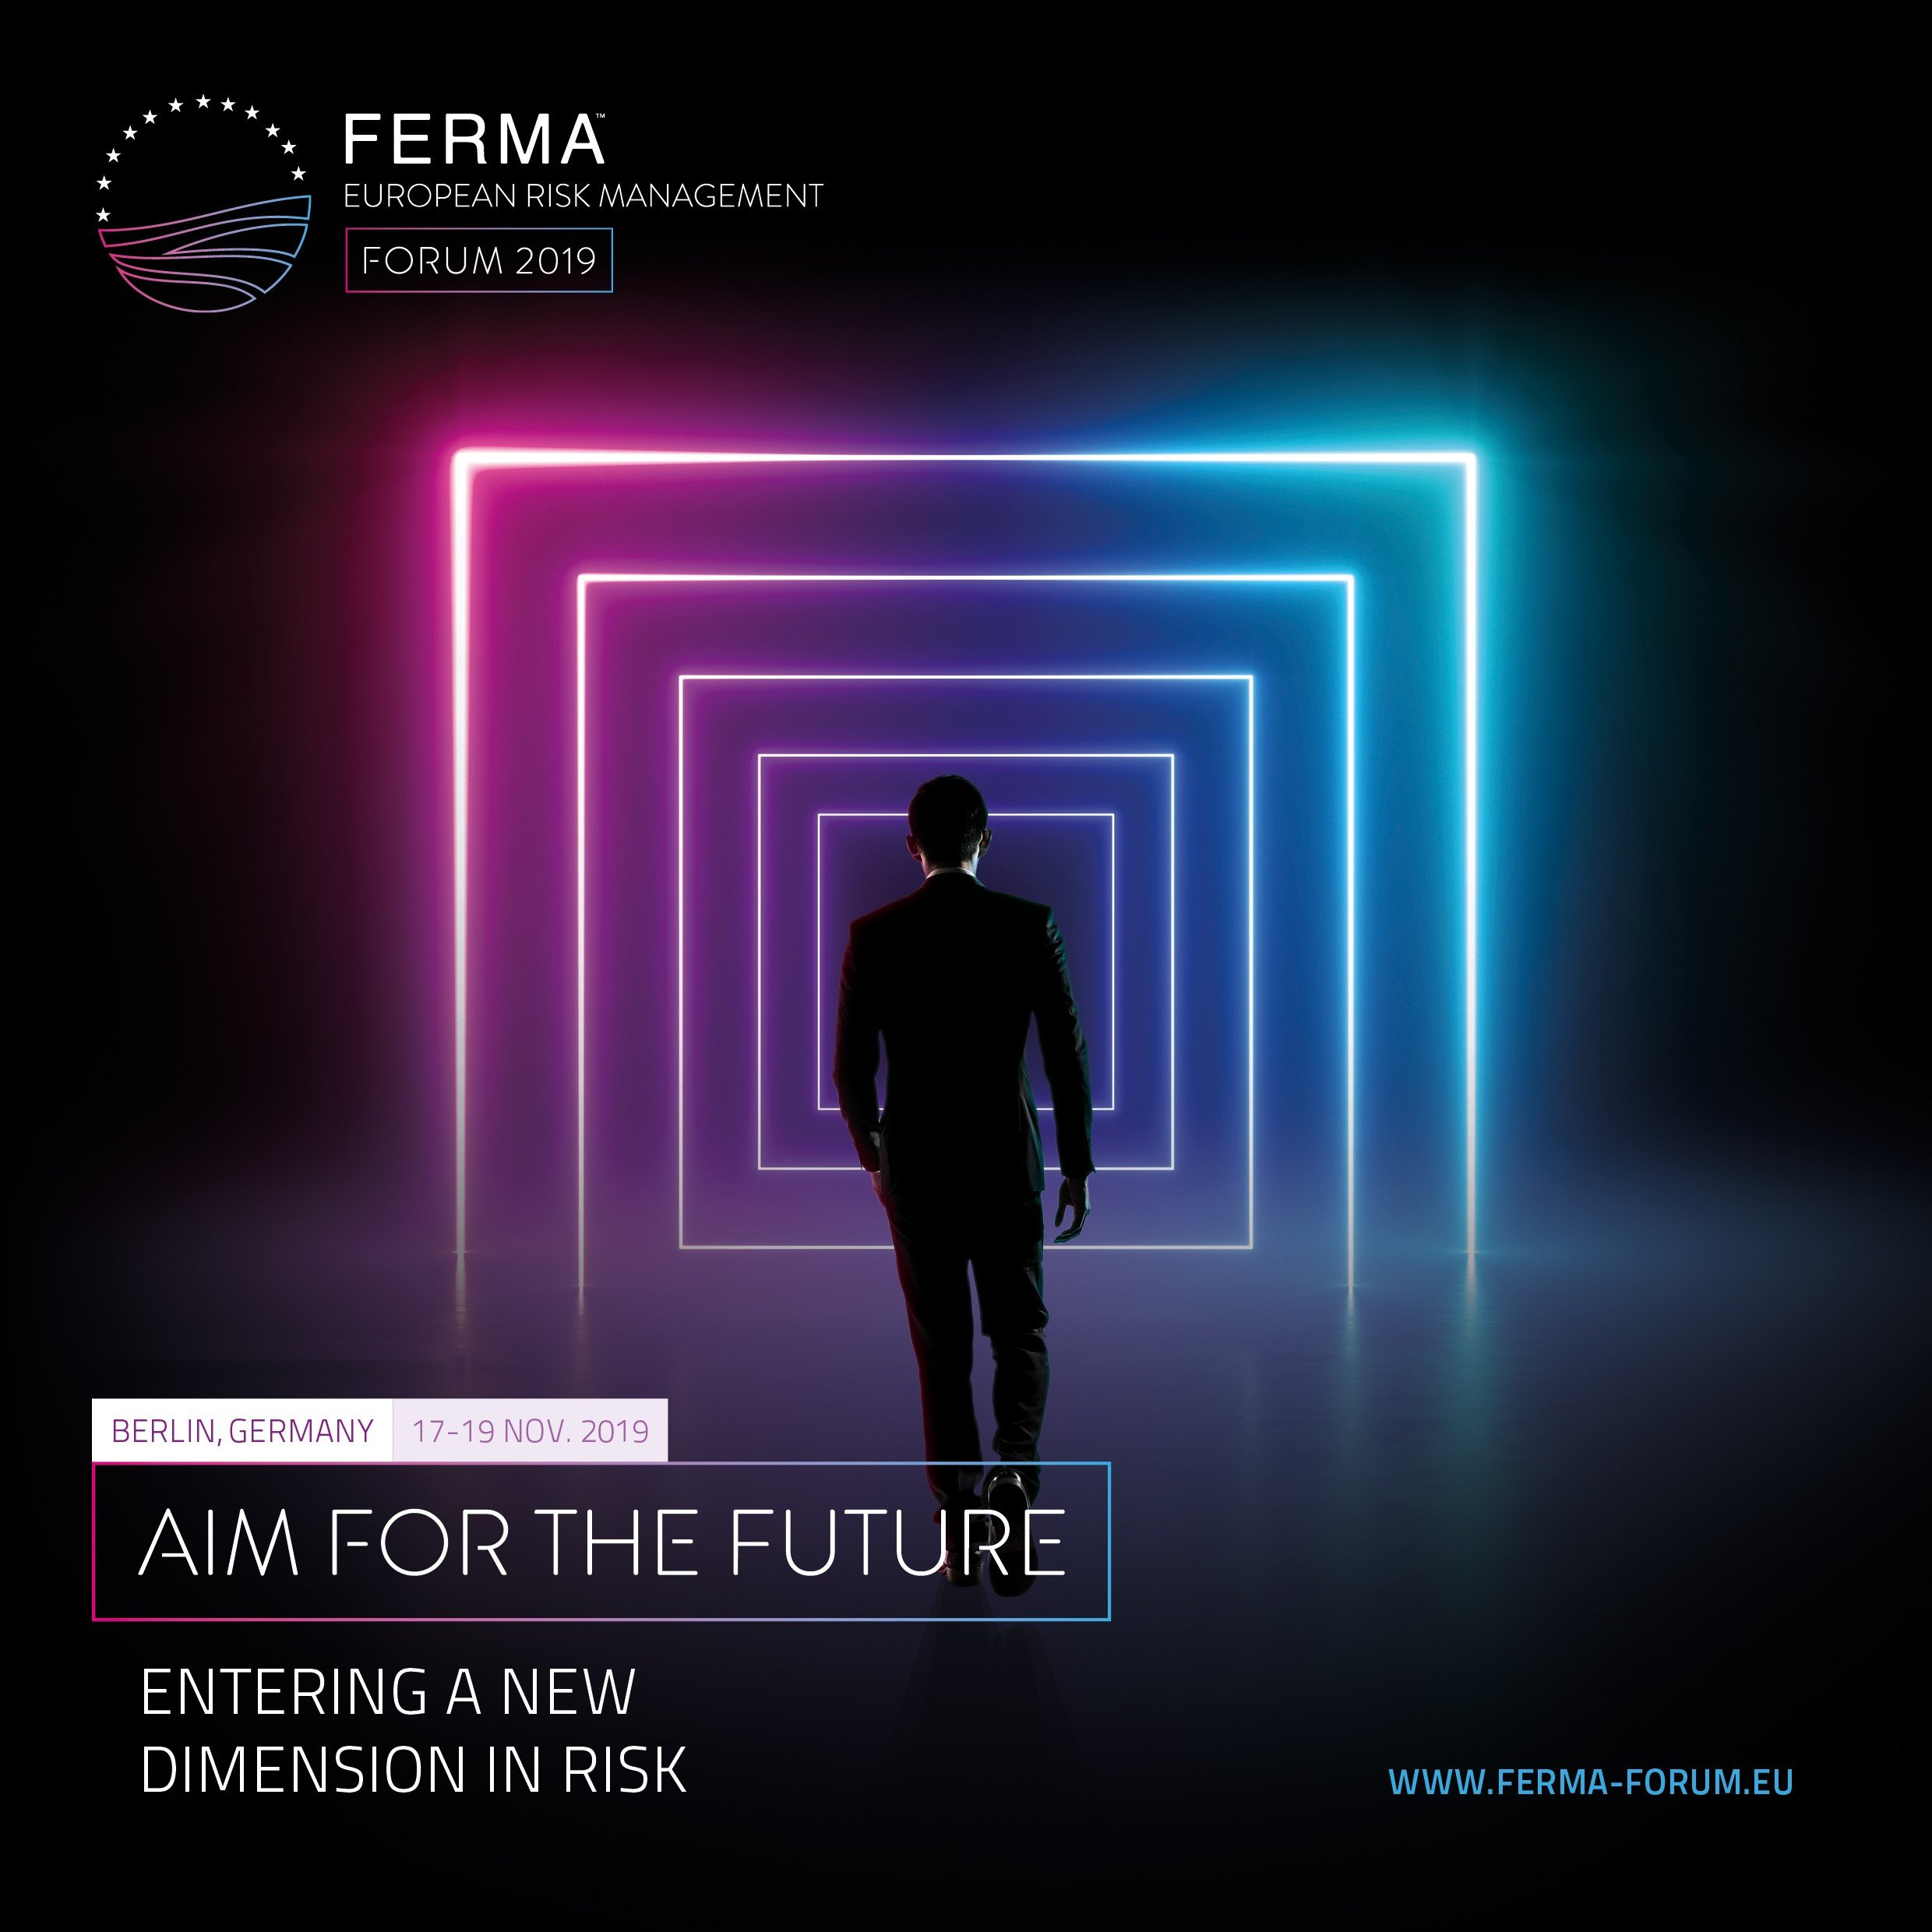 "<a style=""color: #fff;"" target=""_blank"" href=""http://www.ferma-forum.eu"">FERMA – European Risk Management Forum</a>"